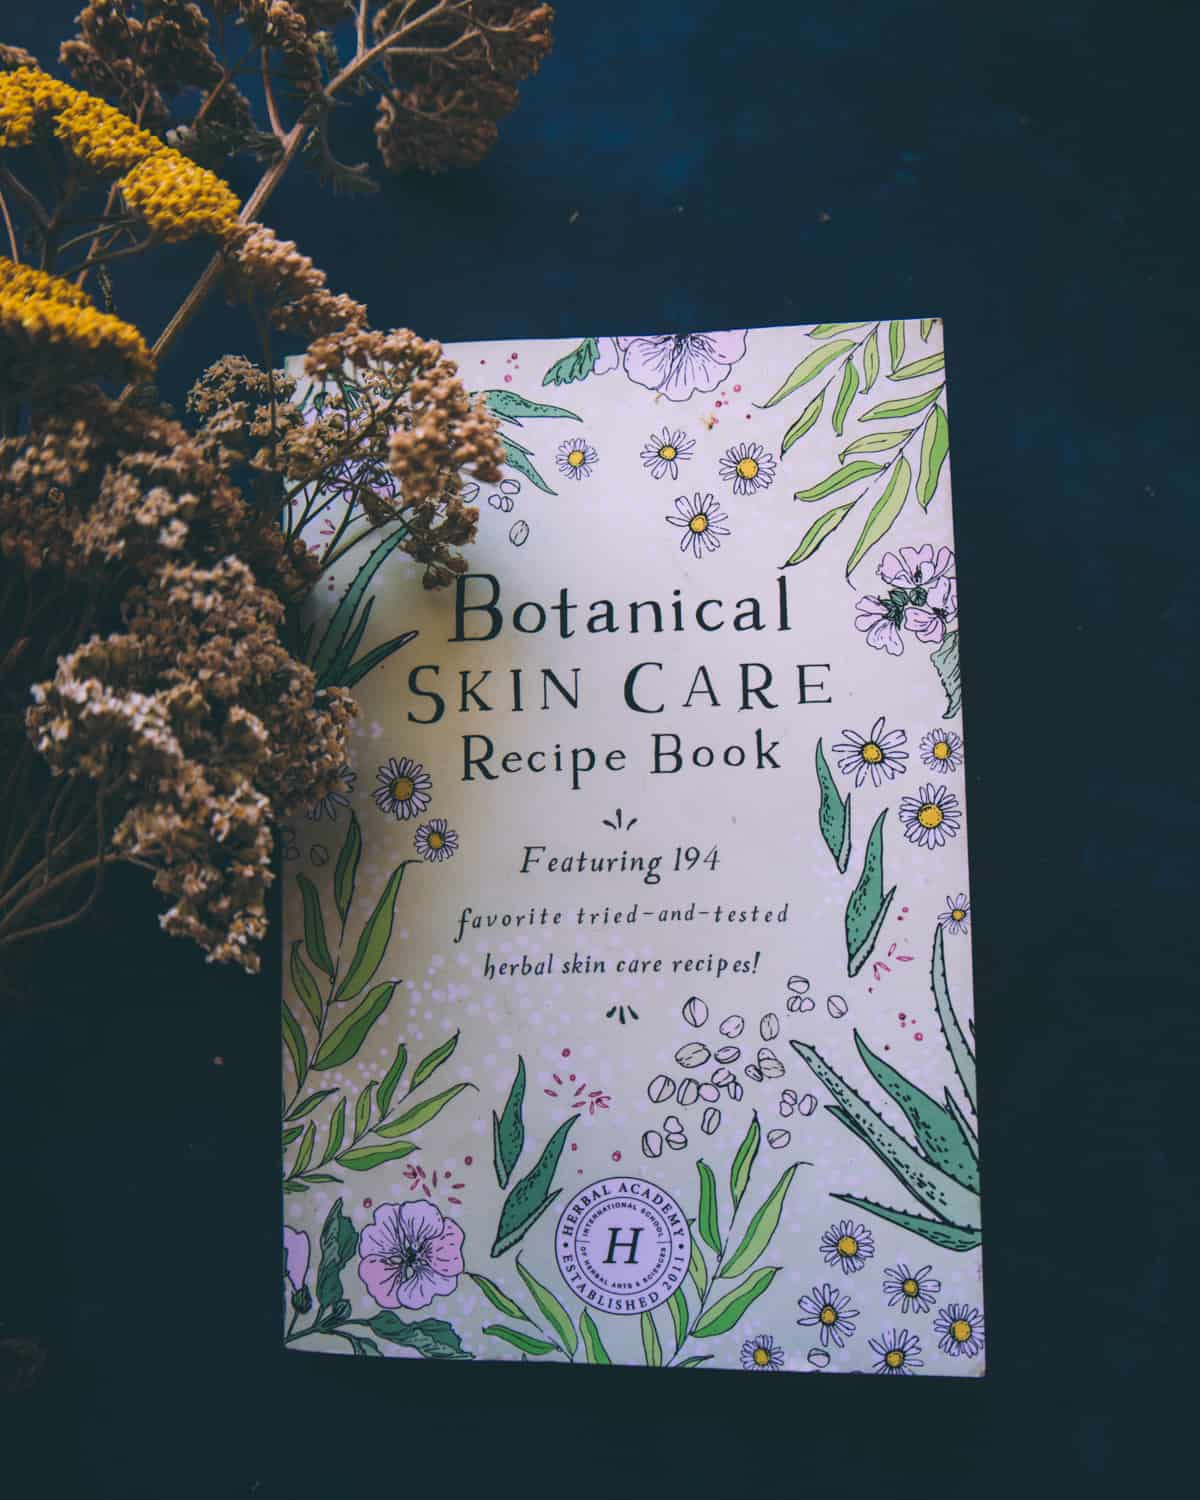 """Dark background featuring a light purple book cover with darker purple flowers and their green leaves surrounding the book title that reads """"Botanical Skin Care Recipe Book featuring 194 favorite tried-and-tested herbal skincare recipes"""""""